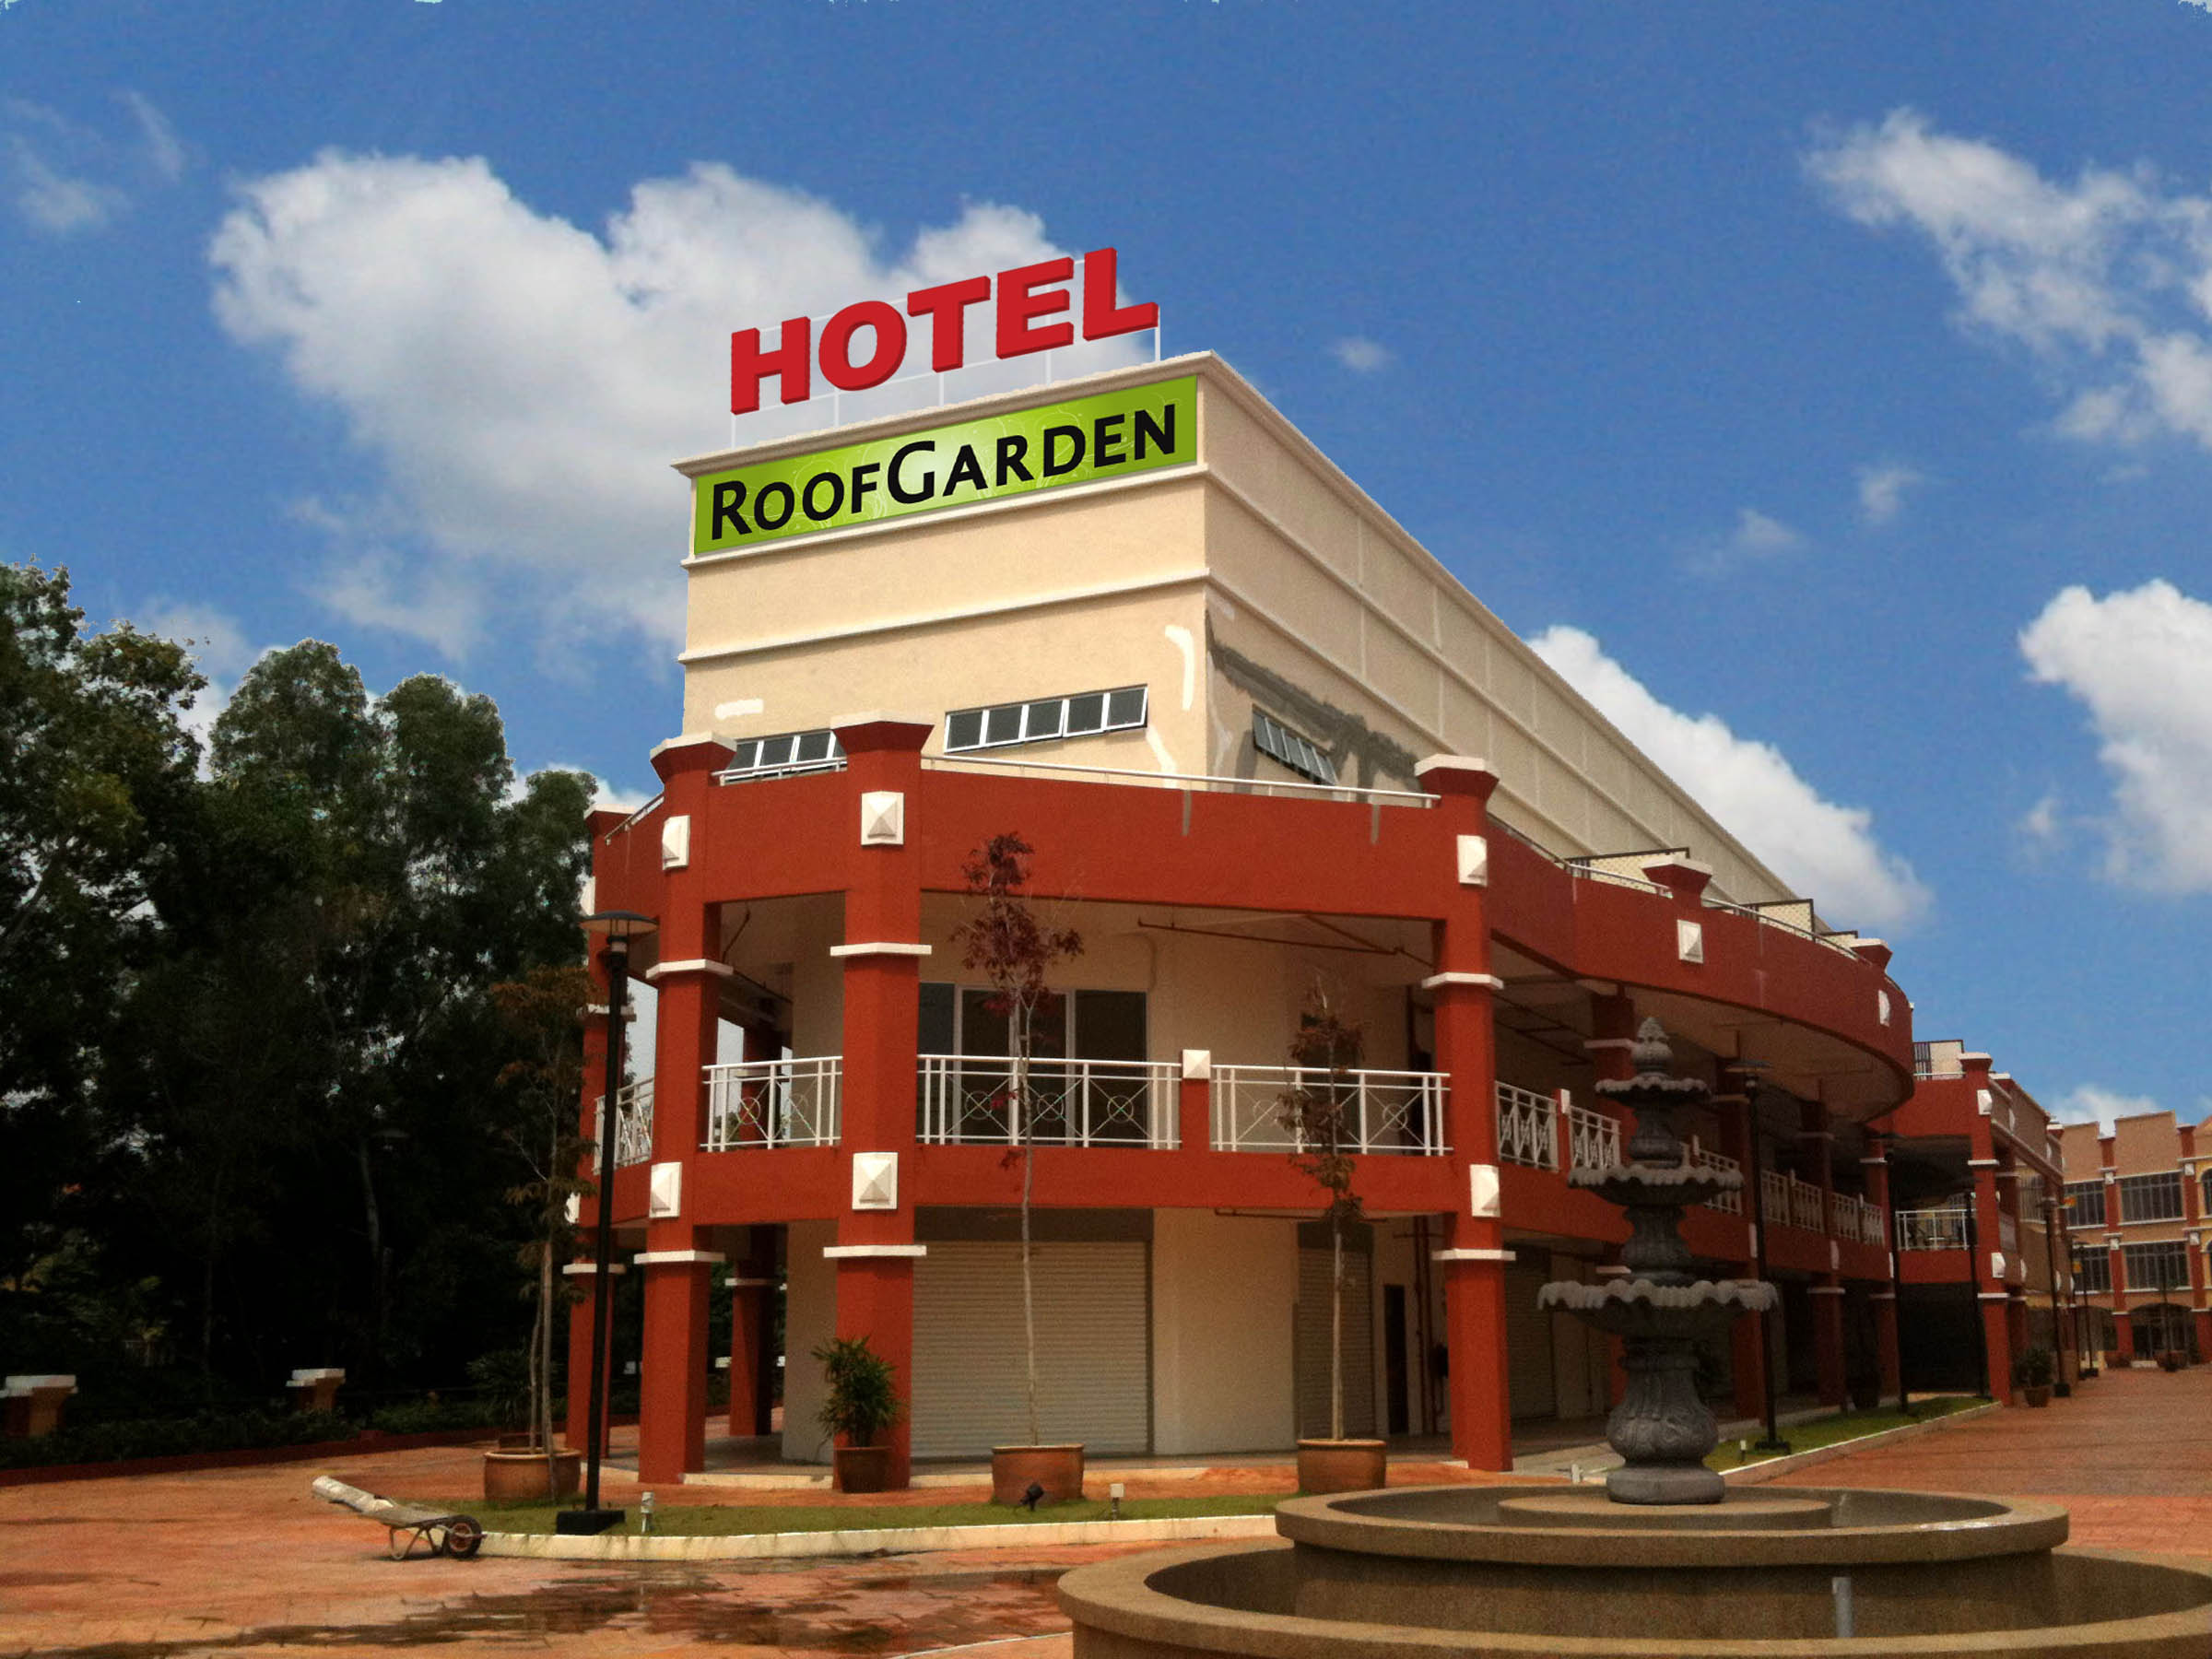 The 10 Closest Hotels to I-City, Shah Alam - TripAdvisor